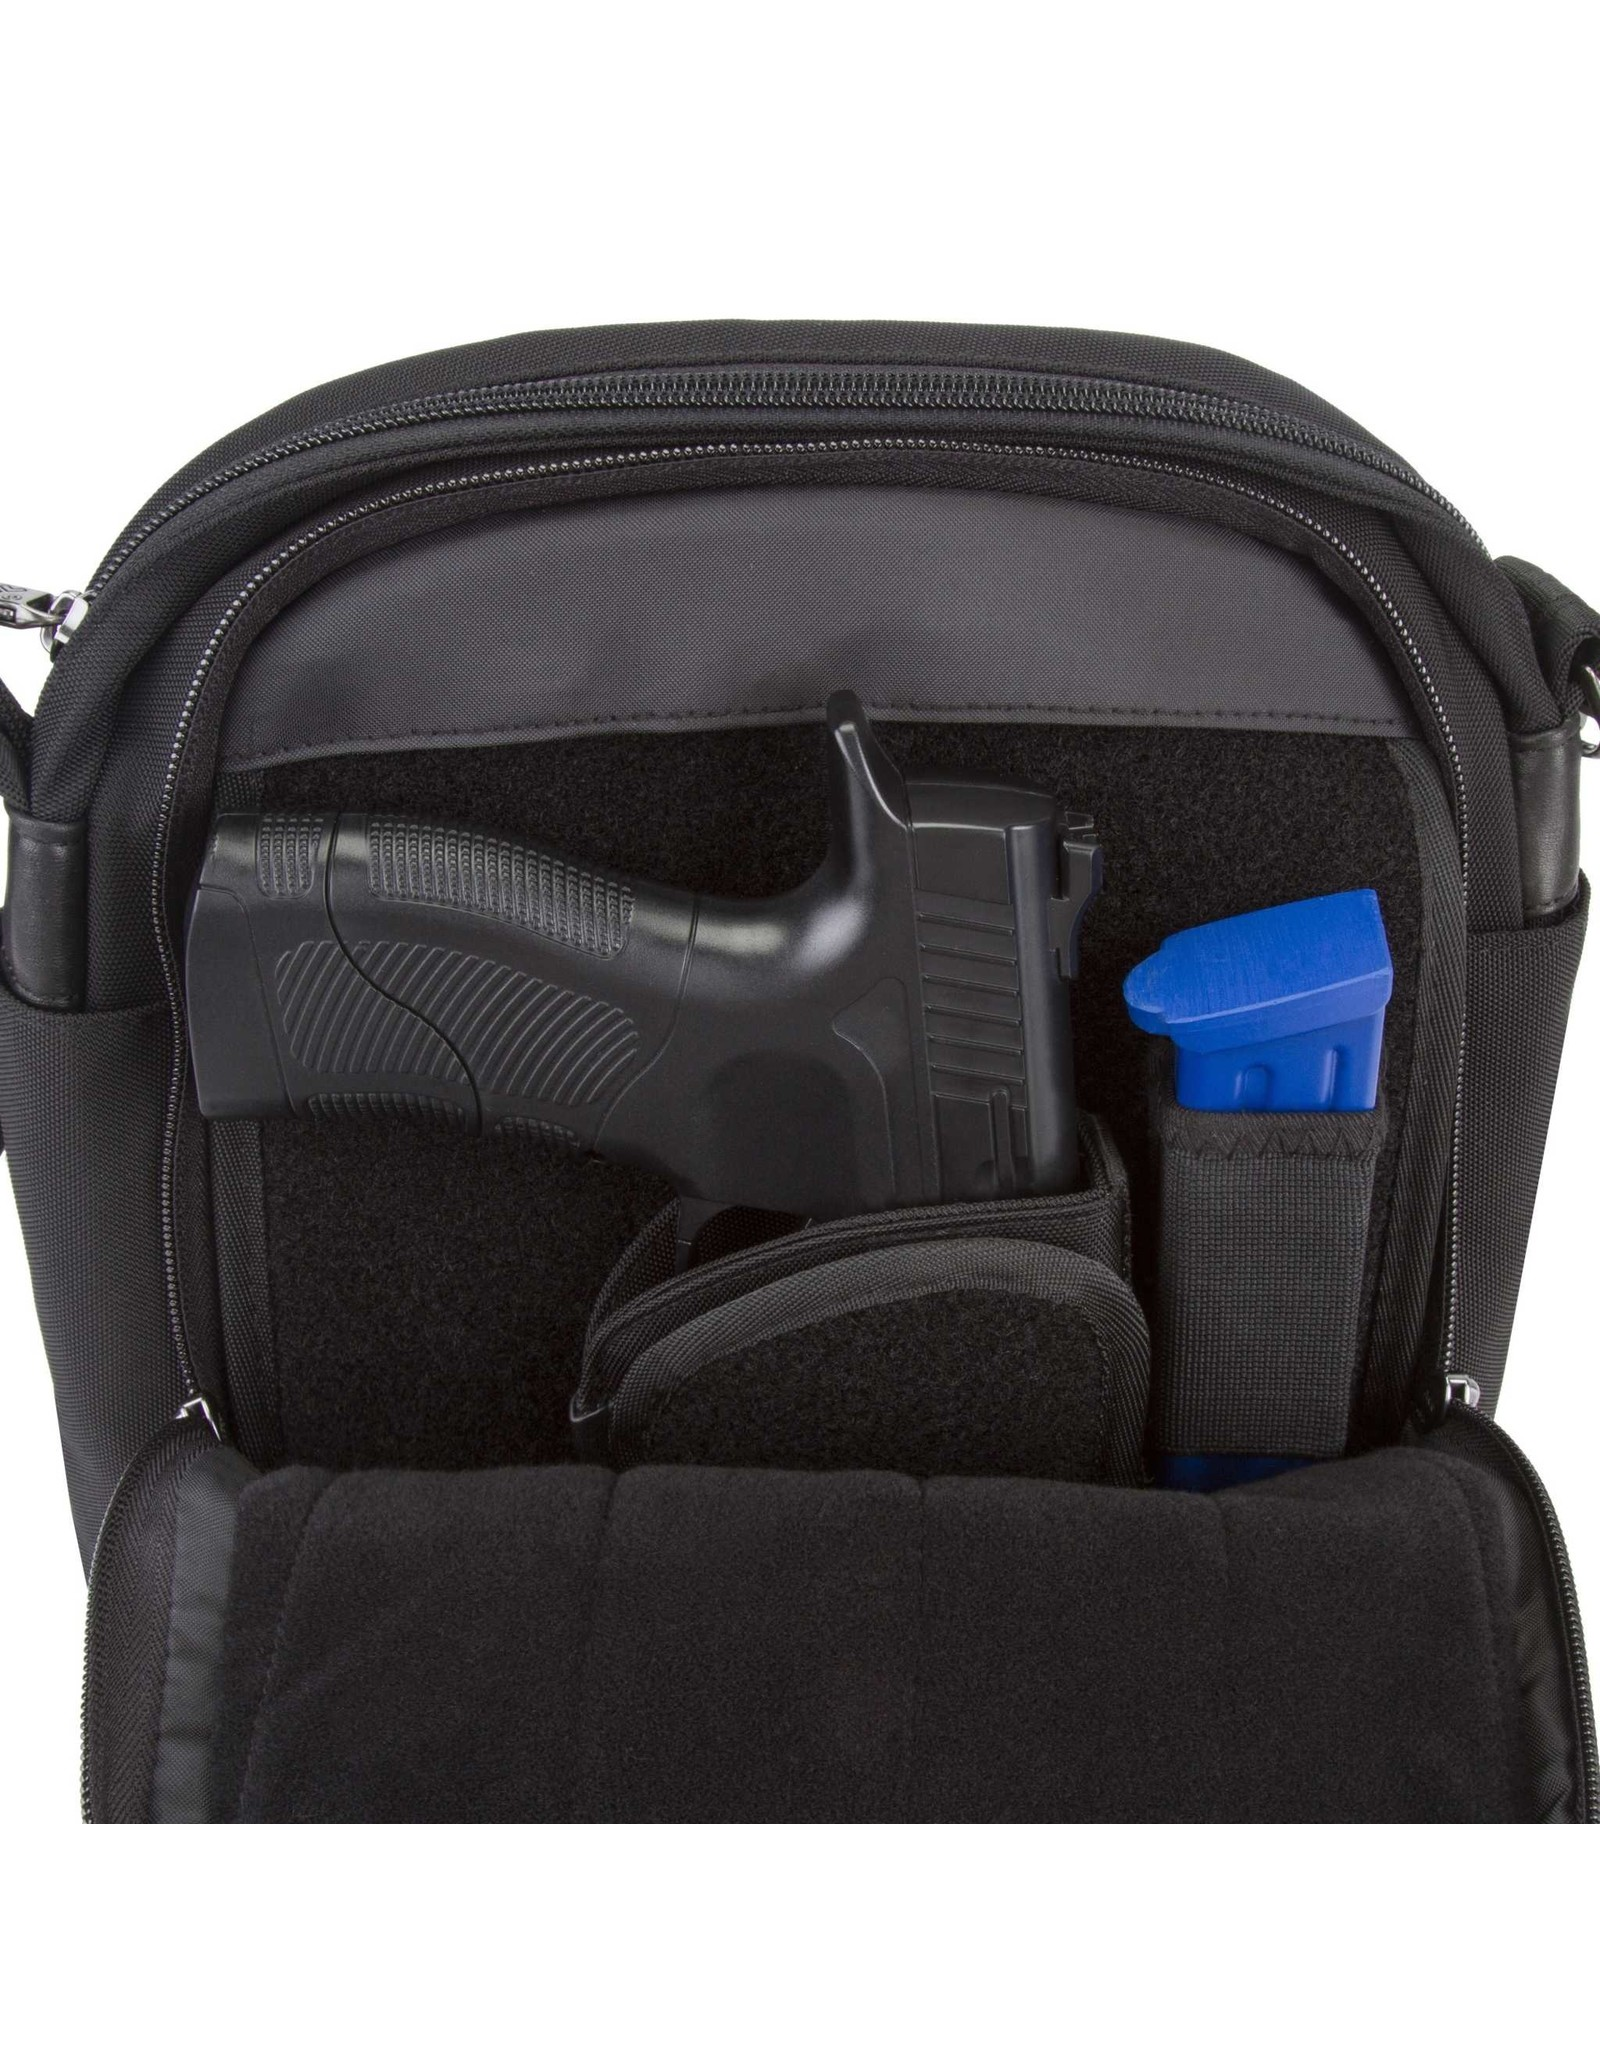 Travelon 43048-500-0060-01 AT Concealed Carry Tour Bag - Black